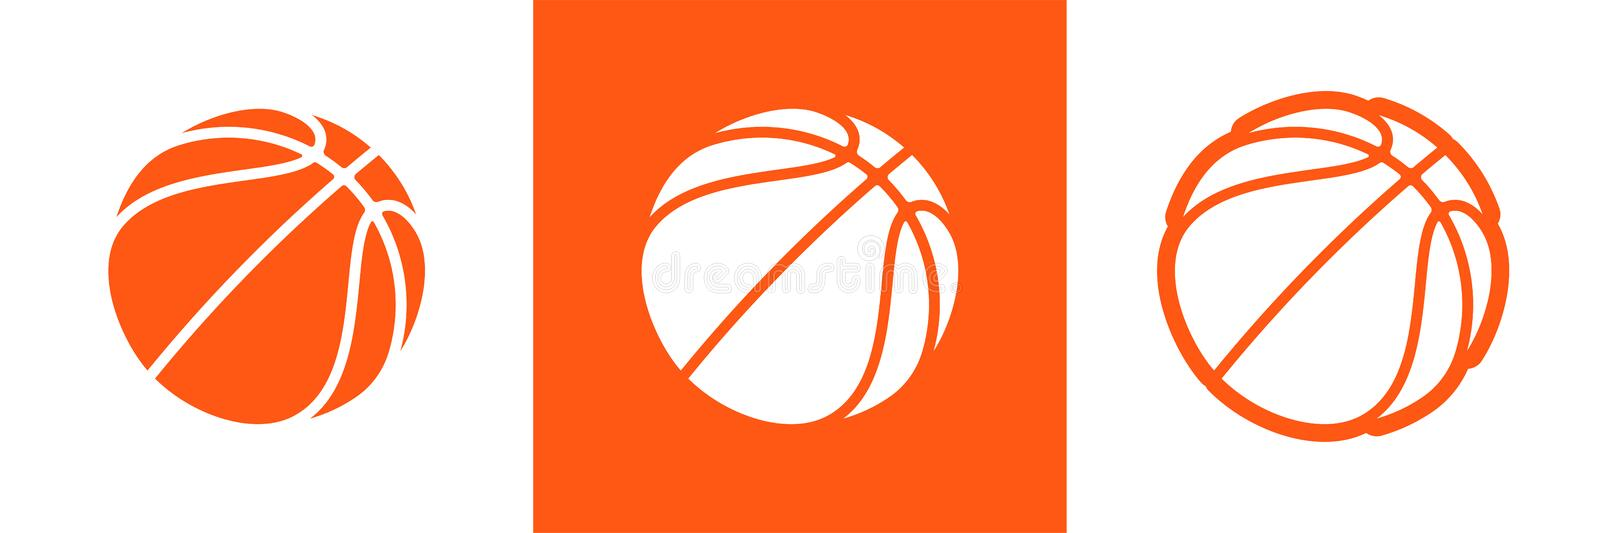 Basketball logo set of vector icon for streetball championship tournament, school or college team league. Vector flat basket ball vector illustration